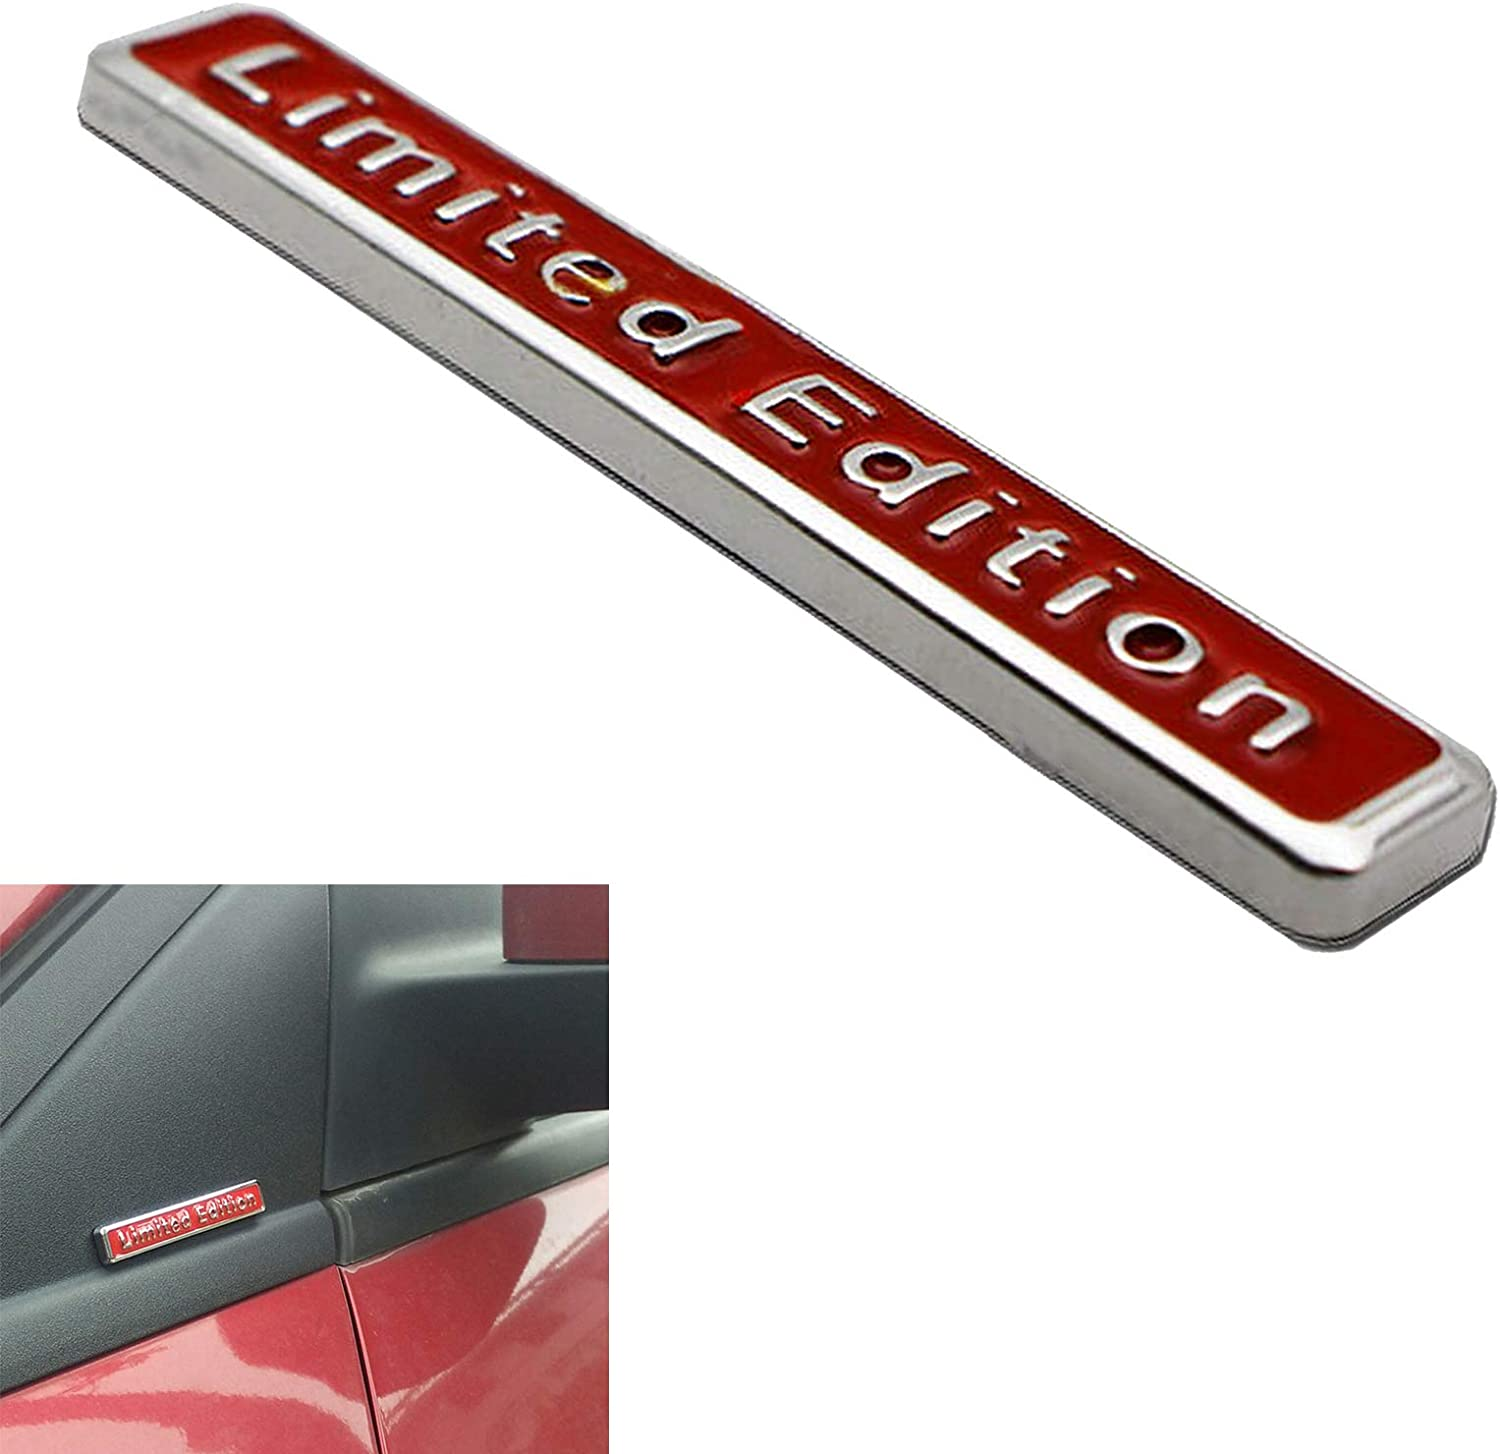 StoreNO12345-3D Car Auto Truck Fender Body Silver//Red DIY Metal Emblem Sticker Turbo Letter Badge Logo Decal Red